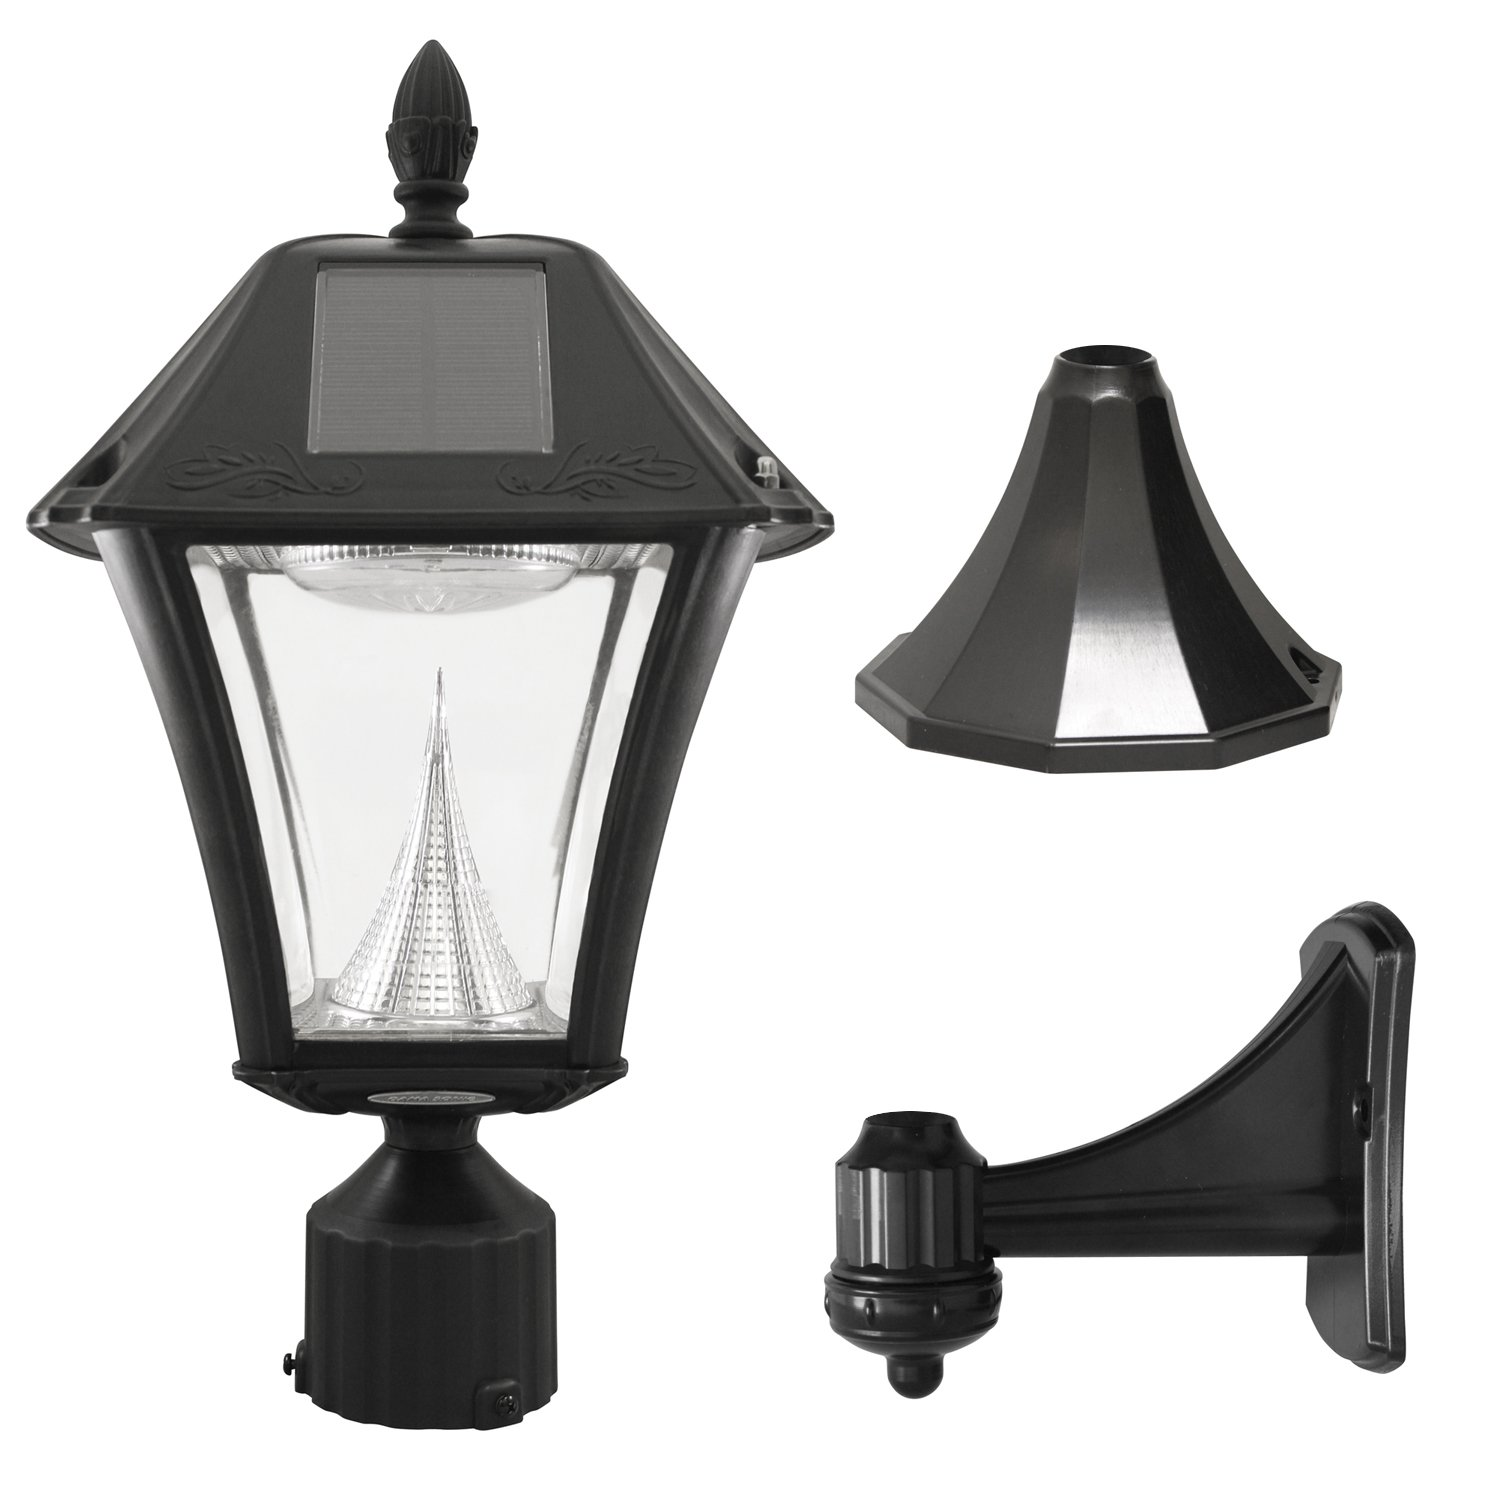 Gama Sonic GS-105FPW-BW Baytown II, Outdoor Solar Light and 3'' Pole Pier & Wall Mount Kits, Lamp Only Only, Bright White LED, Black by Gama Sonic